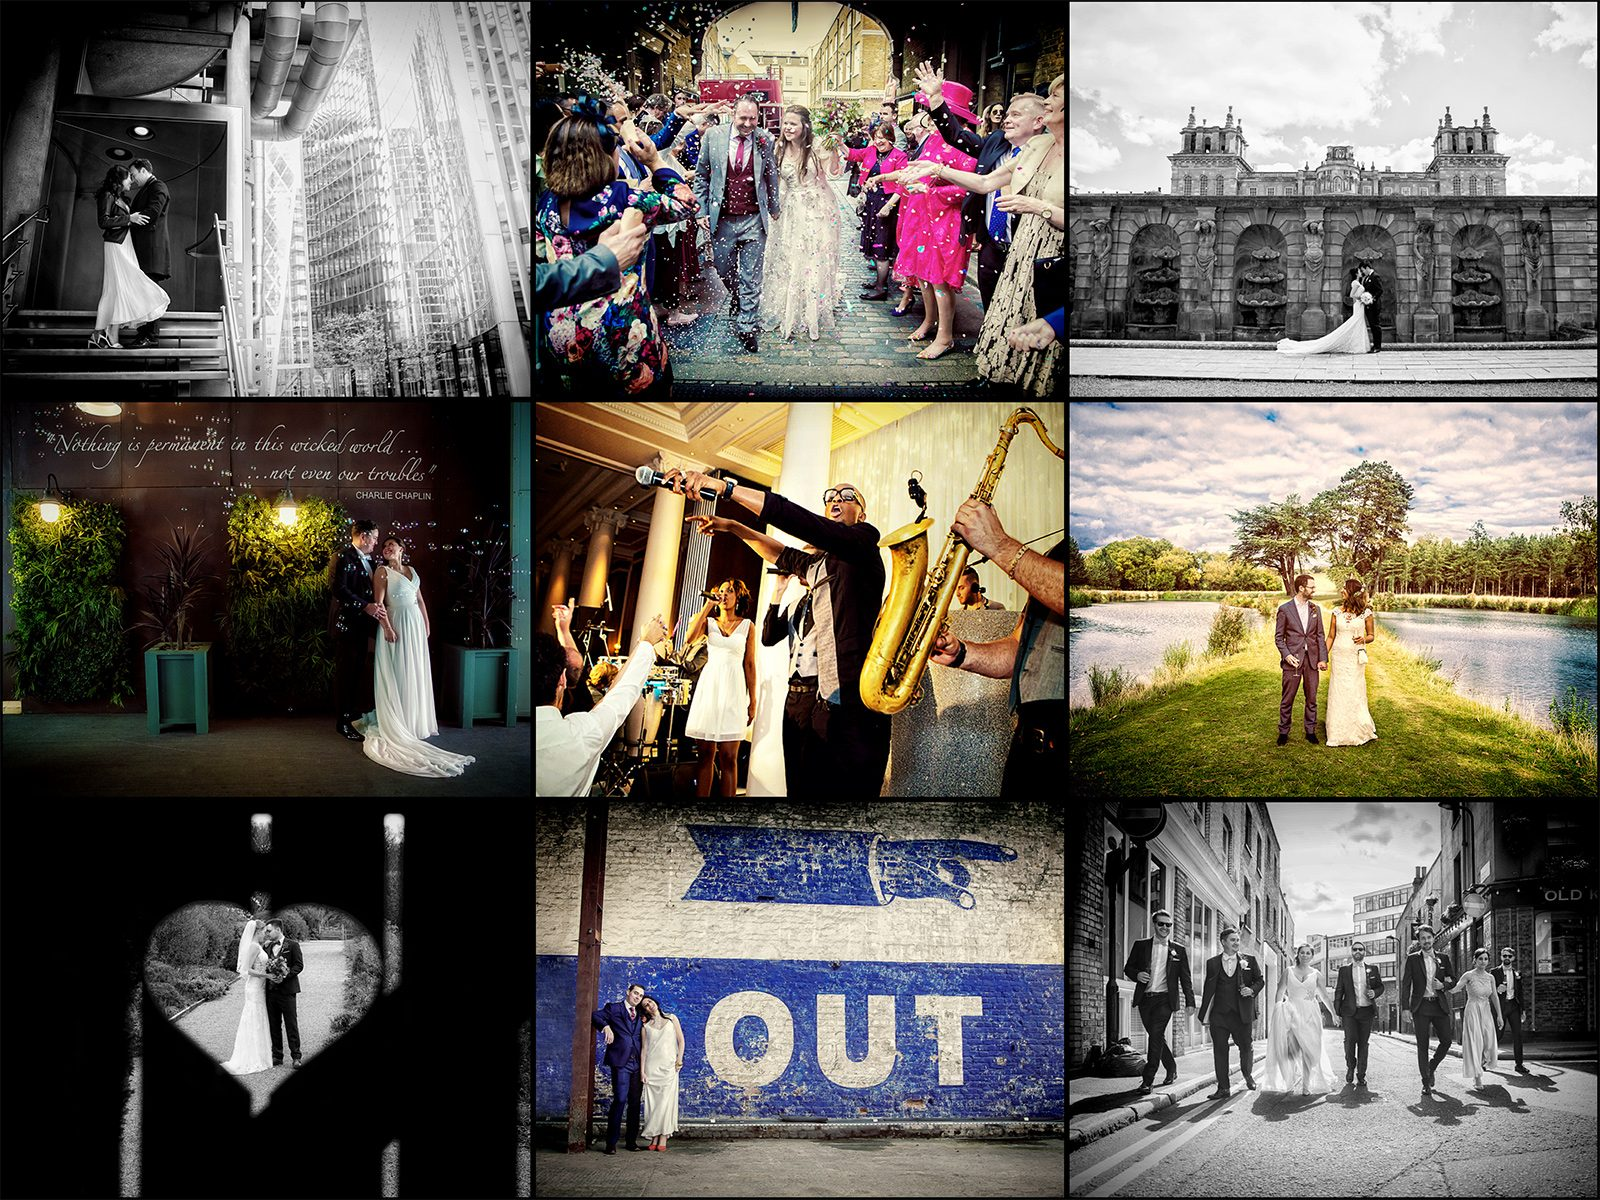 More of our favourite wedding images from in and around London in the past year London Wedding Photographers